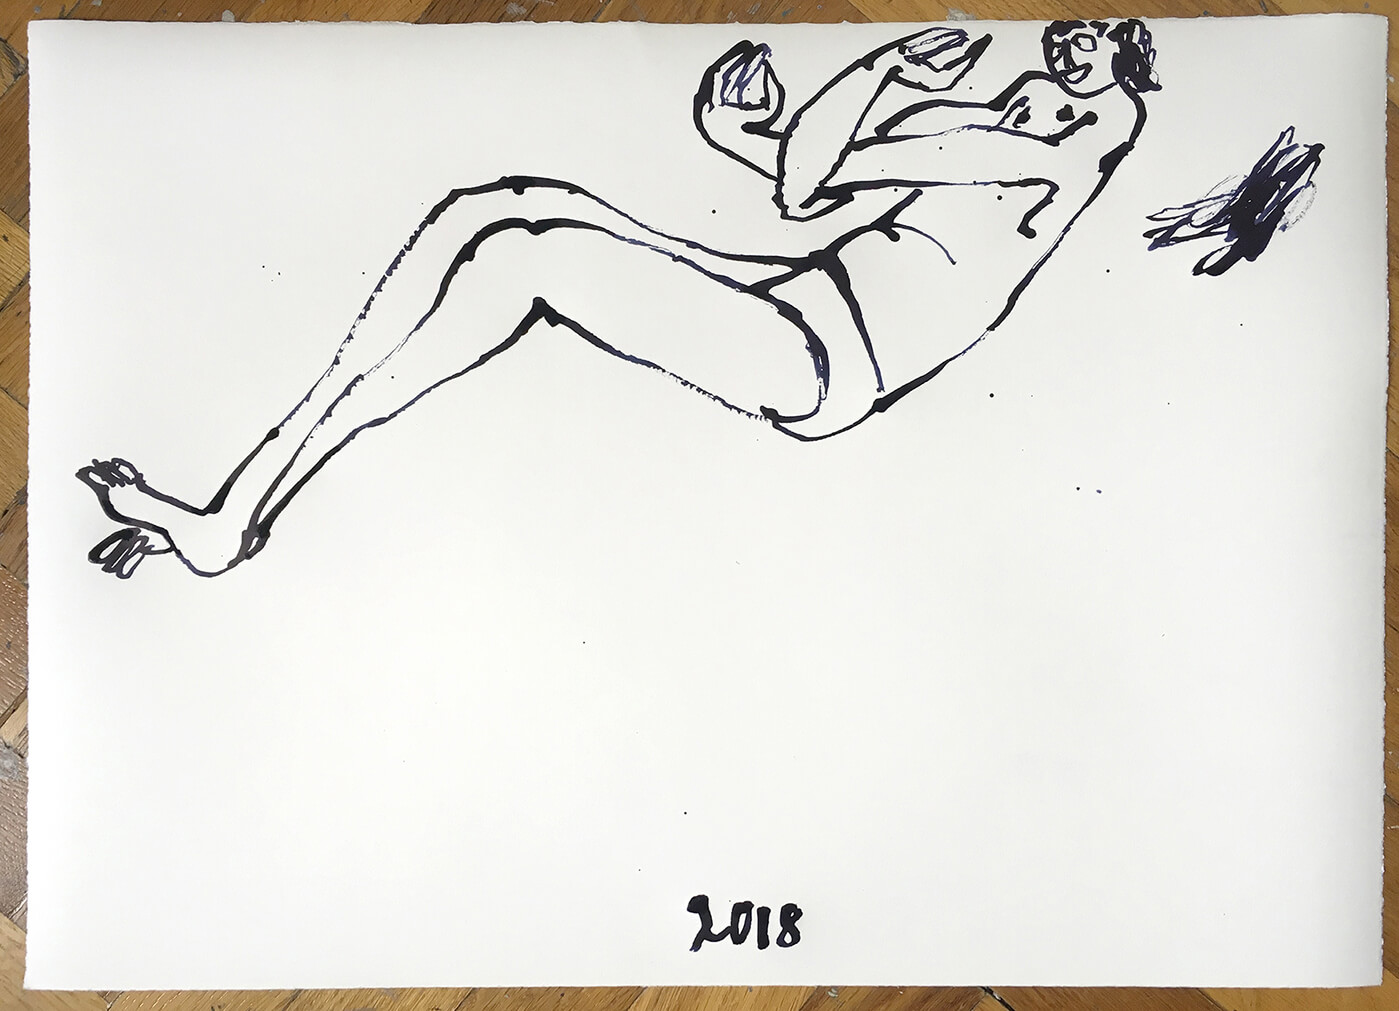 josef zekoff, available artworks, contemporary art, drawing, ink